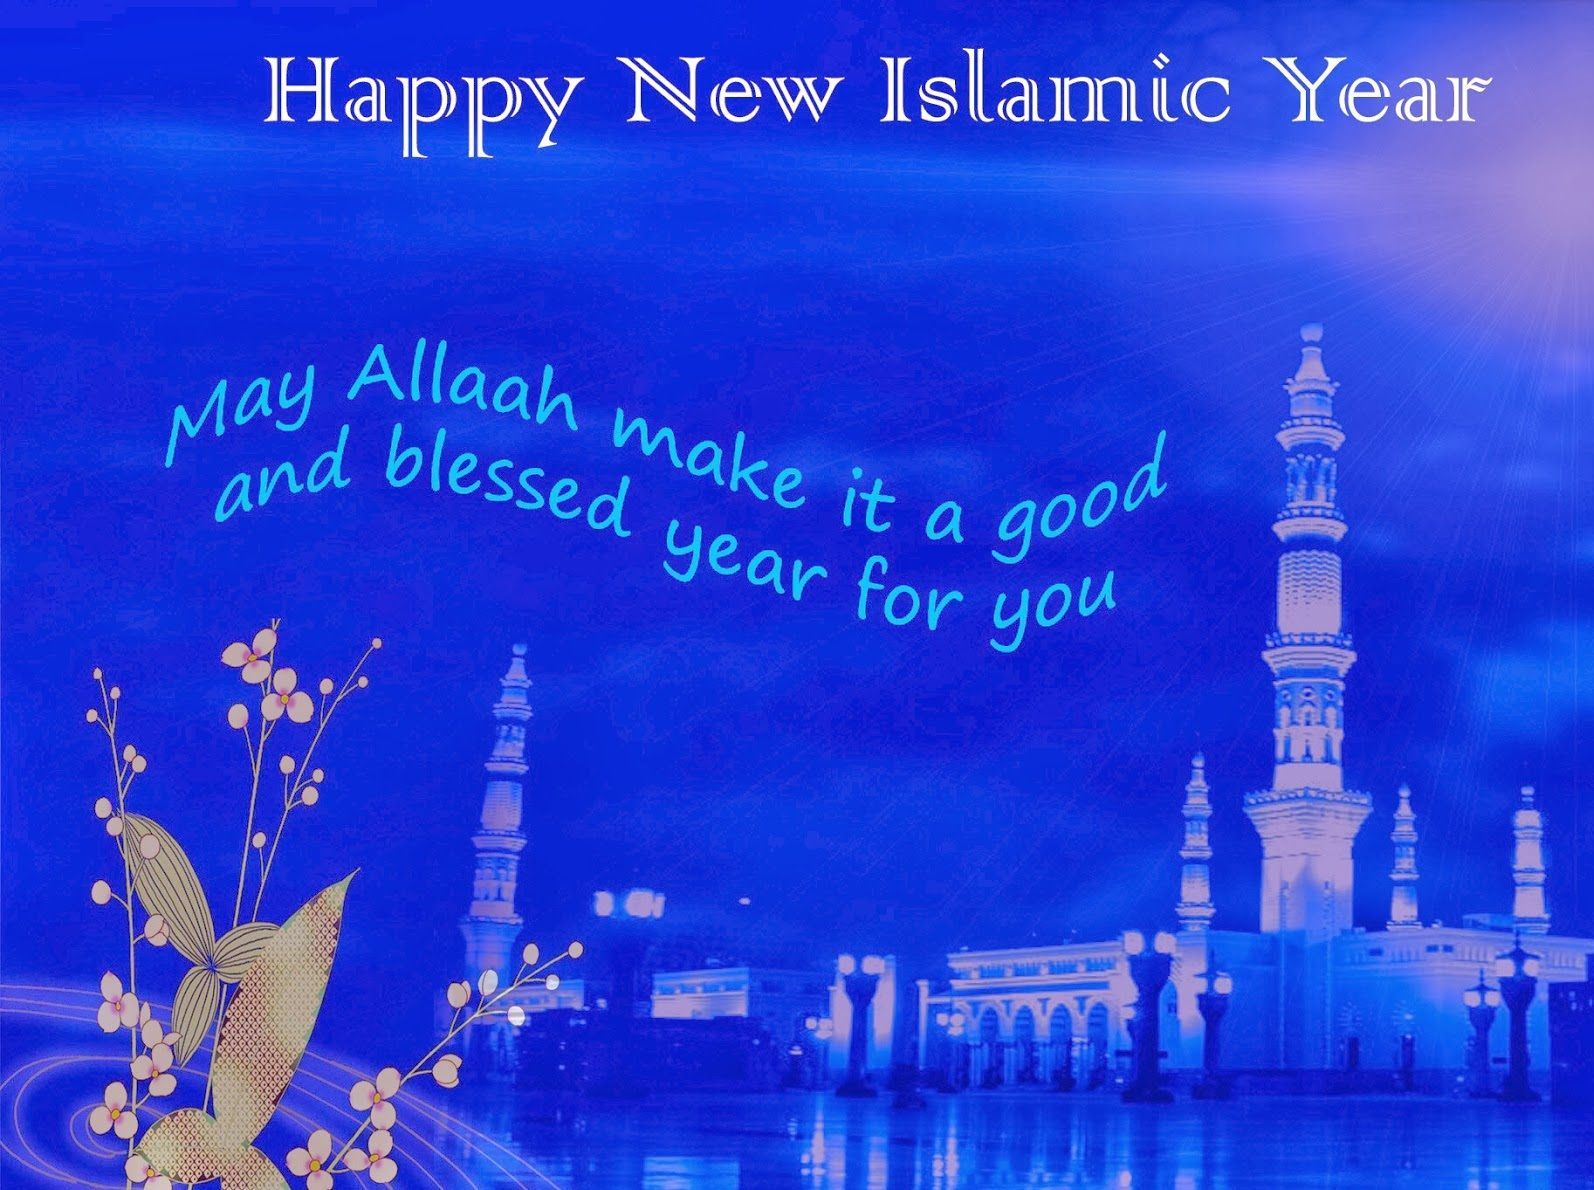 islami new year wallpaper